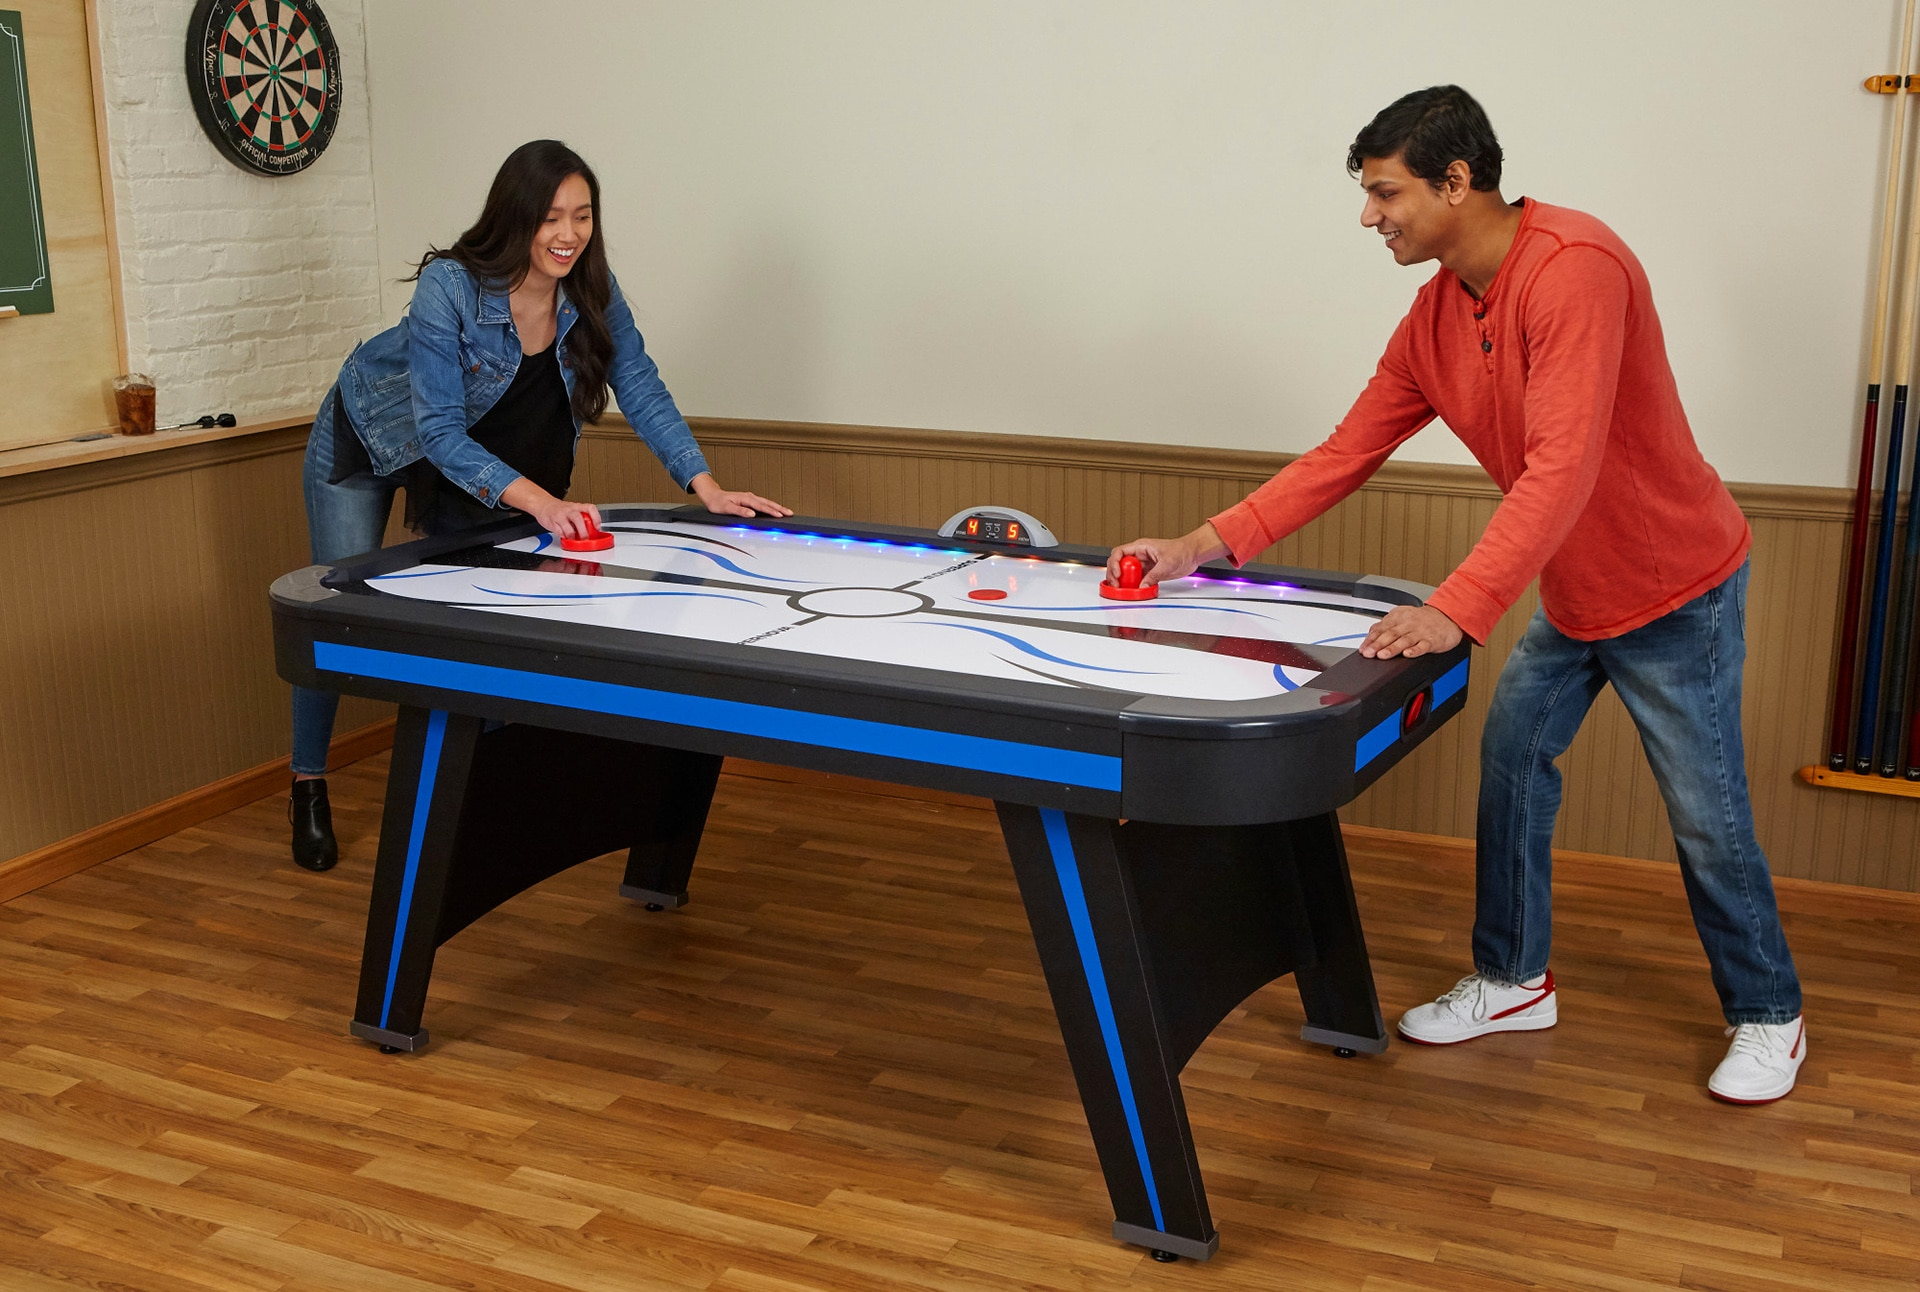 Amateur Air Hockey Rules — Everything You Need to Know